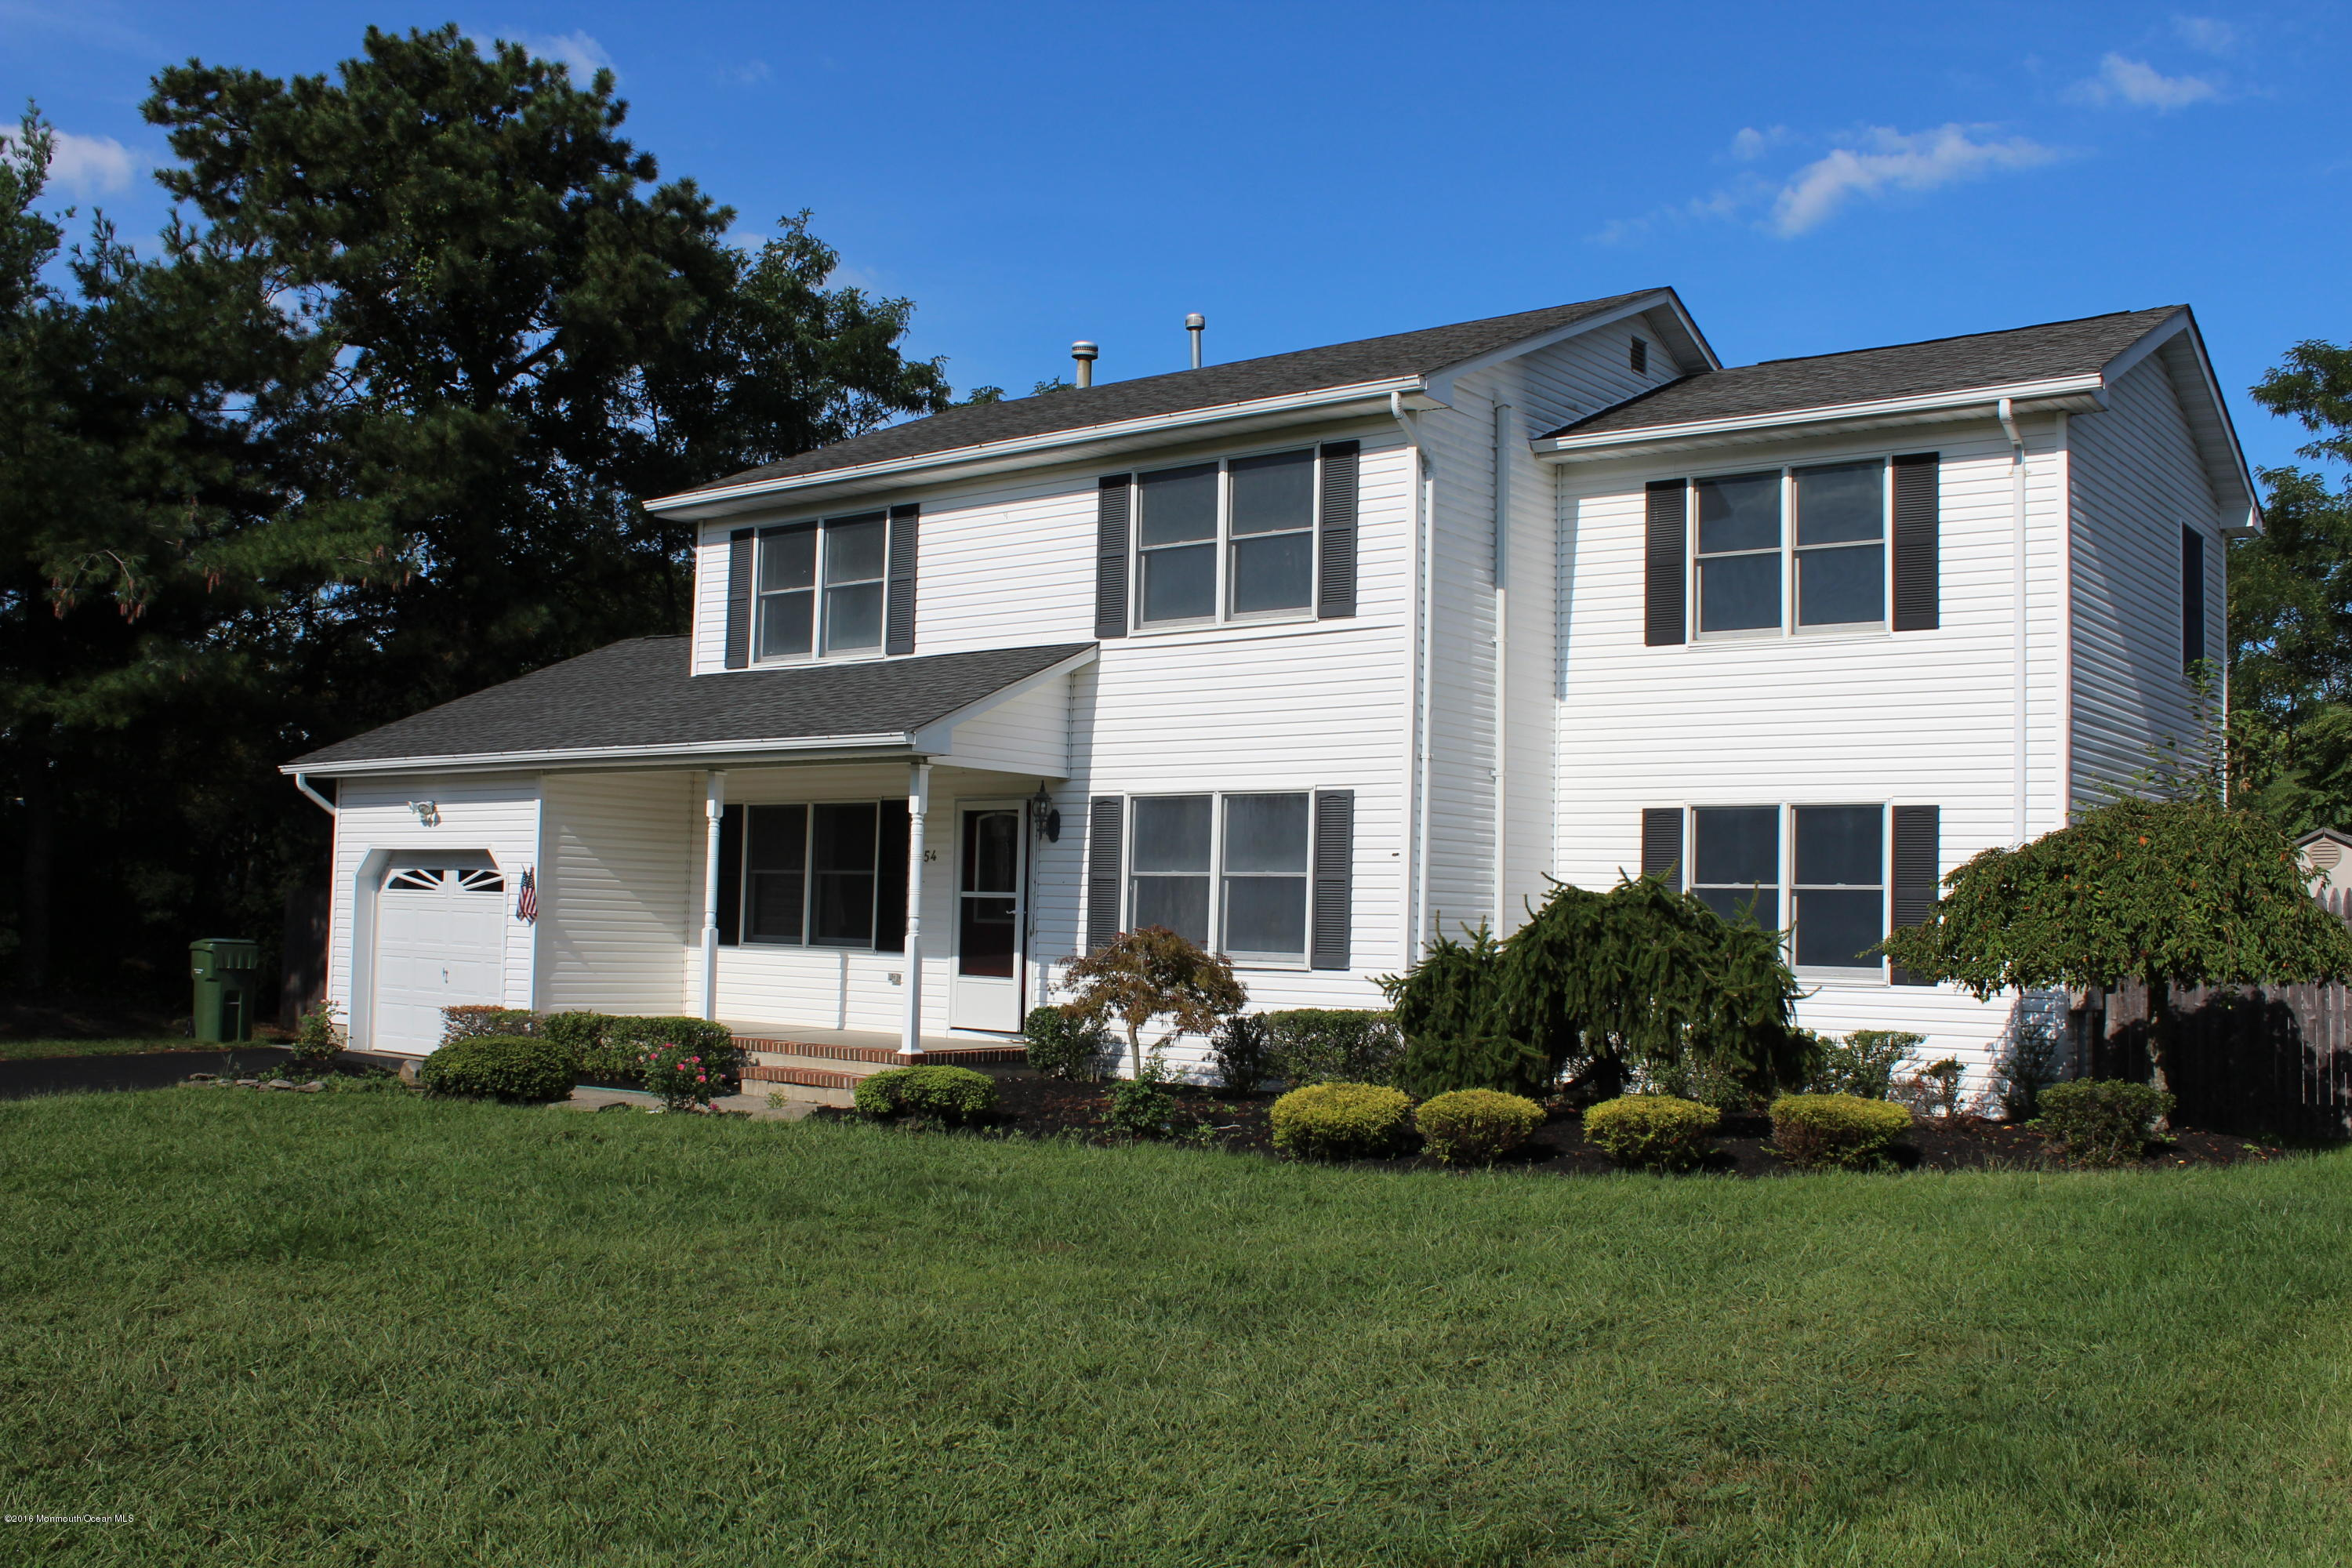 Photo of home for sale at 54 Russell Terrace Terrace, Eatontown NJ